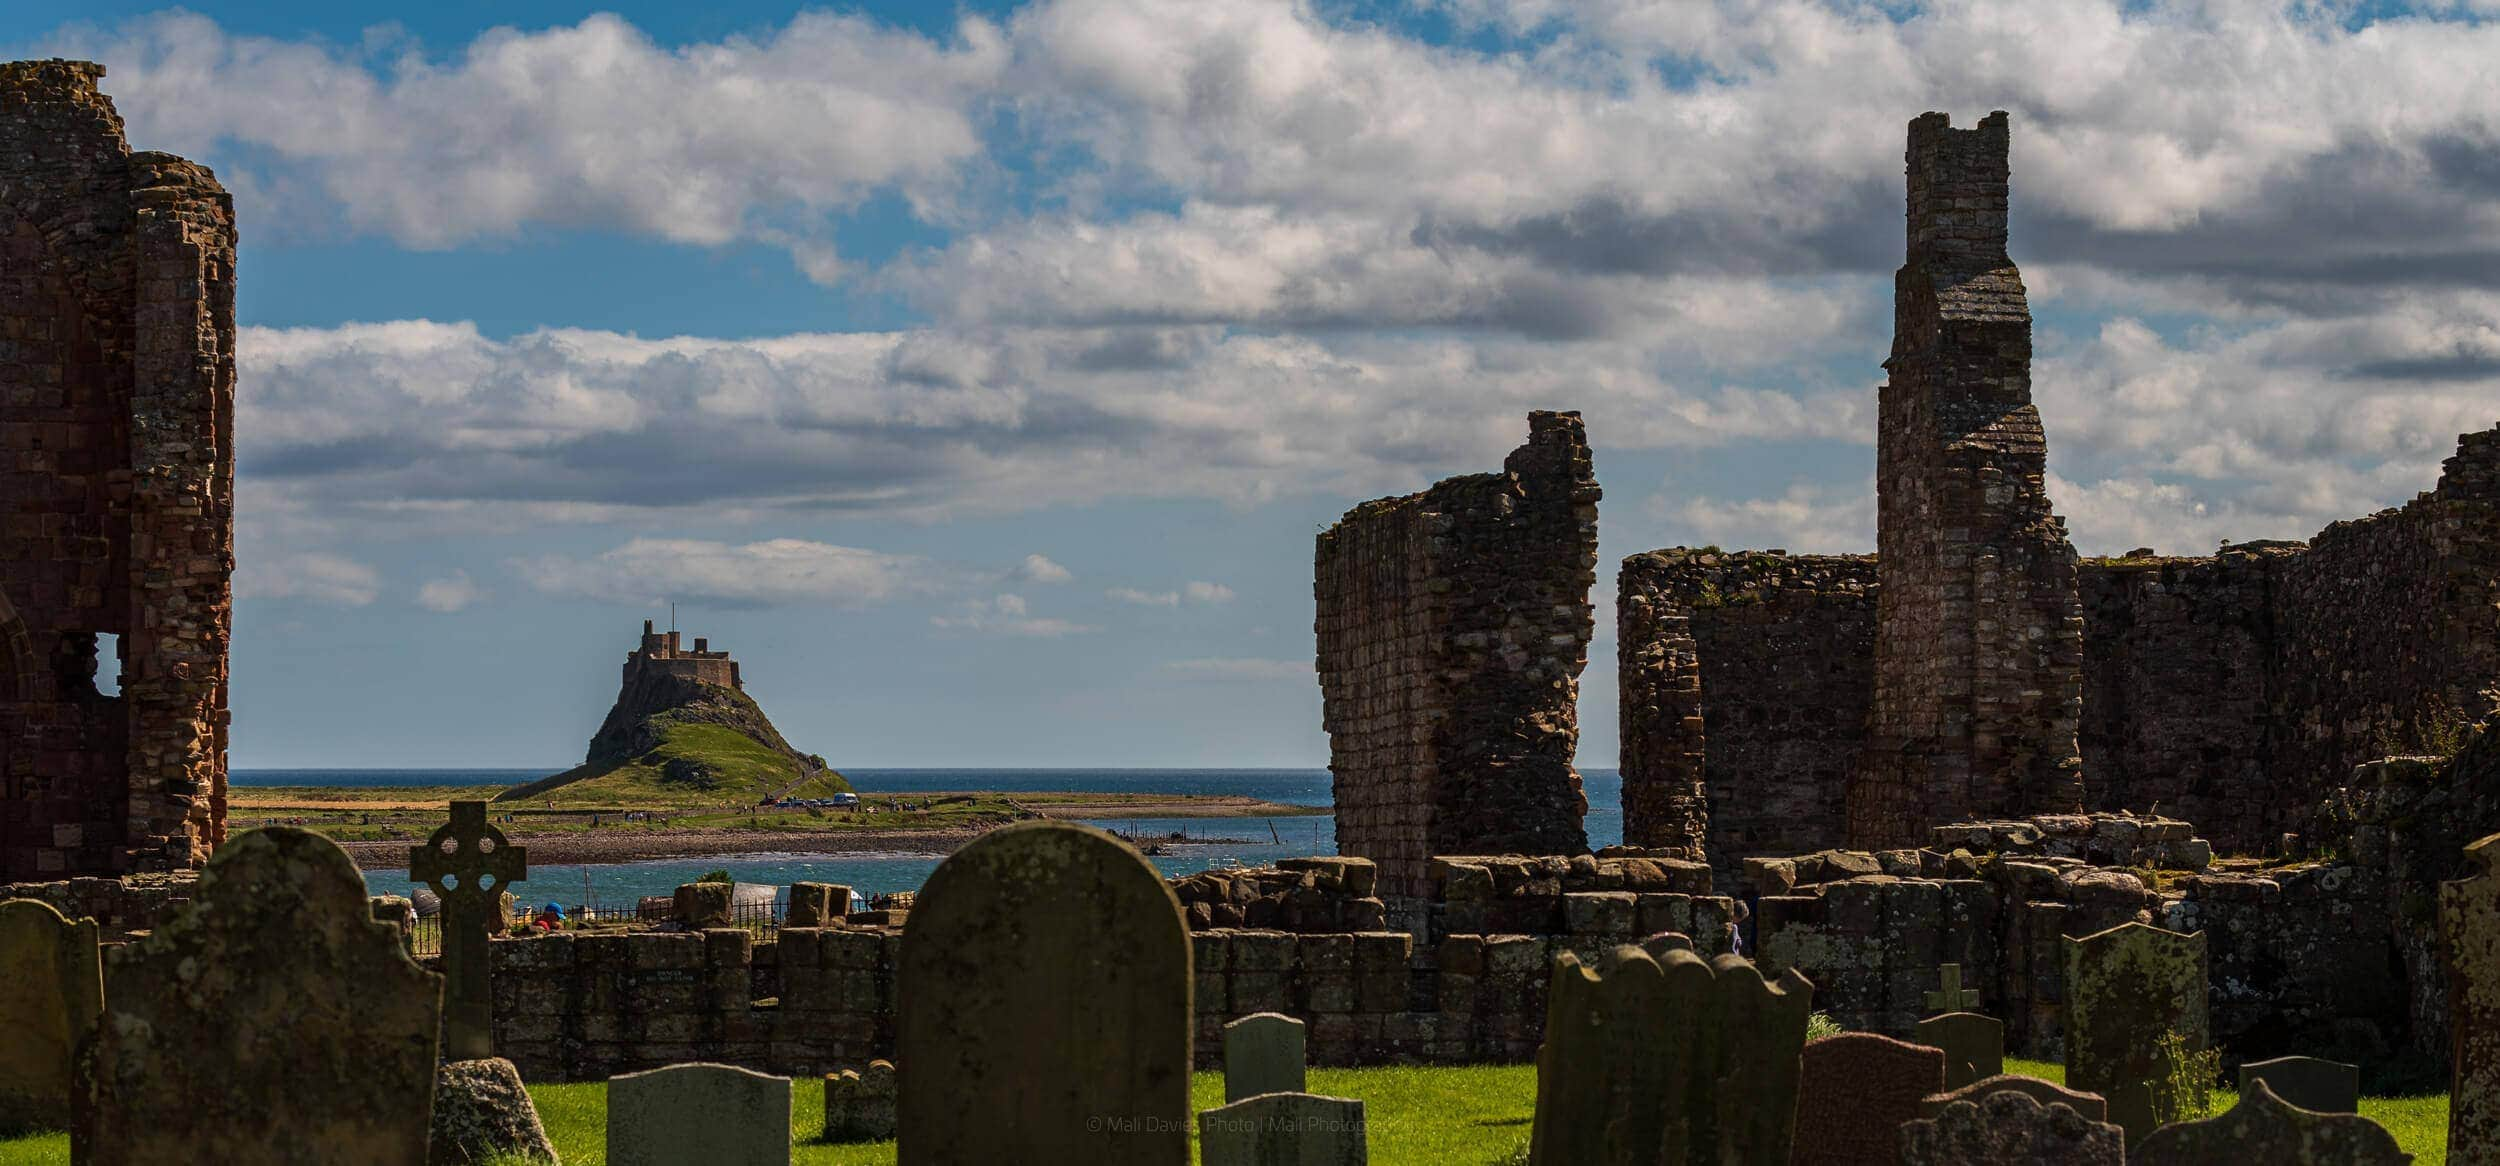 Looking to Holy Island Castle